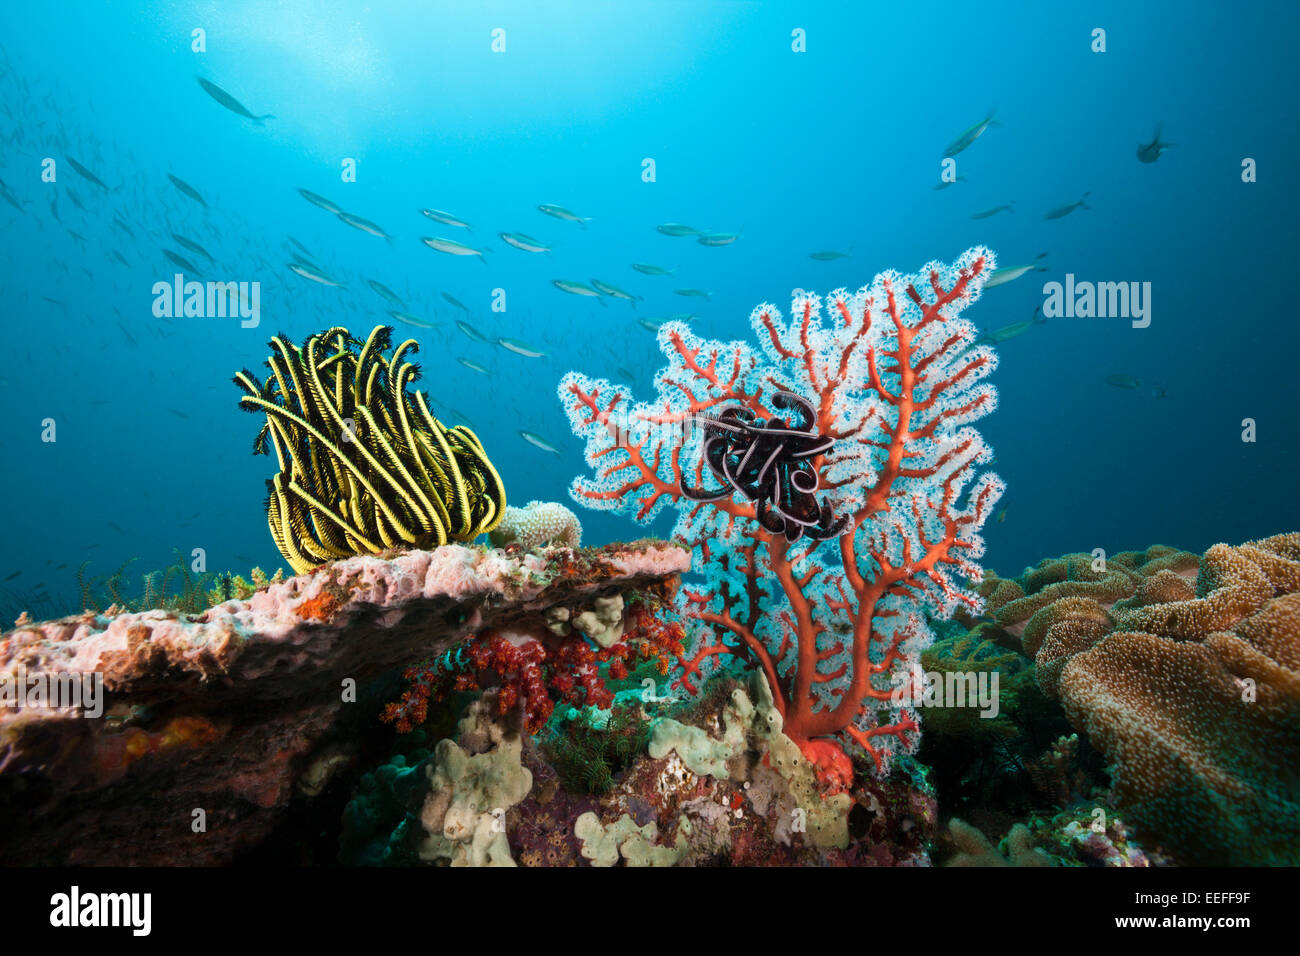 Featherstar in Coral Reef, Triton Bay, West Papua, Indonesia - Stock Image